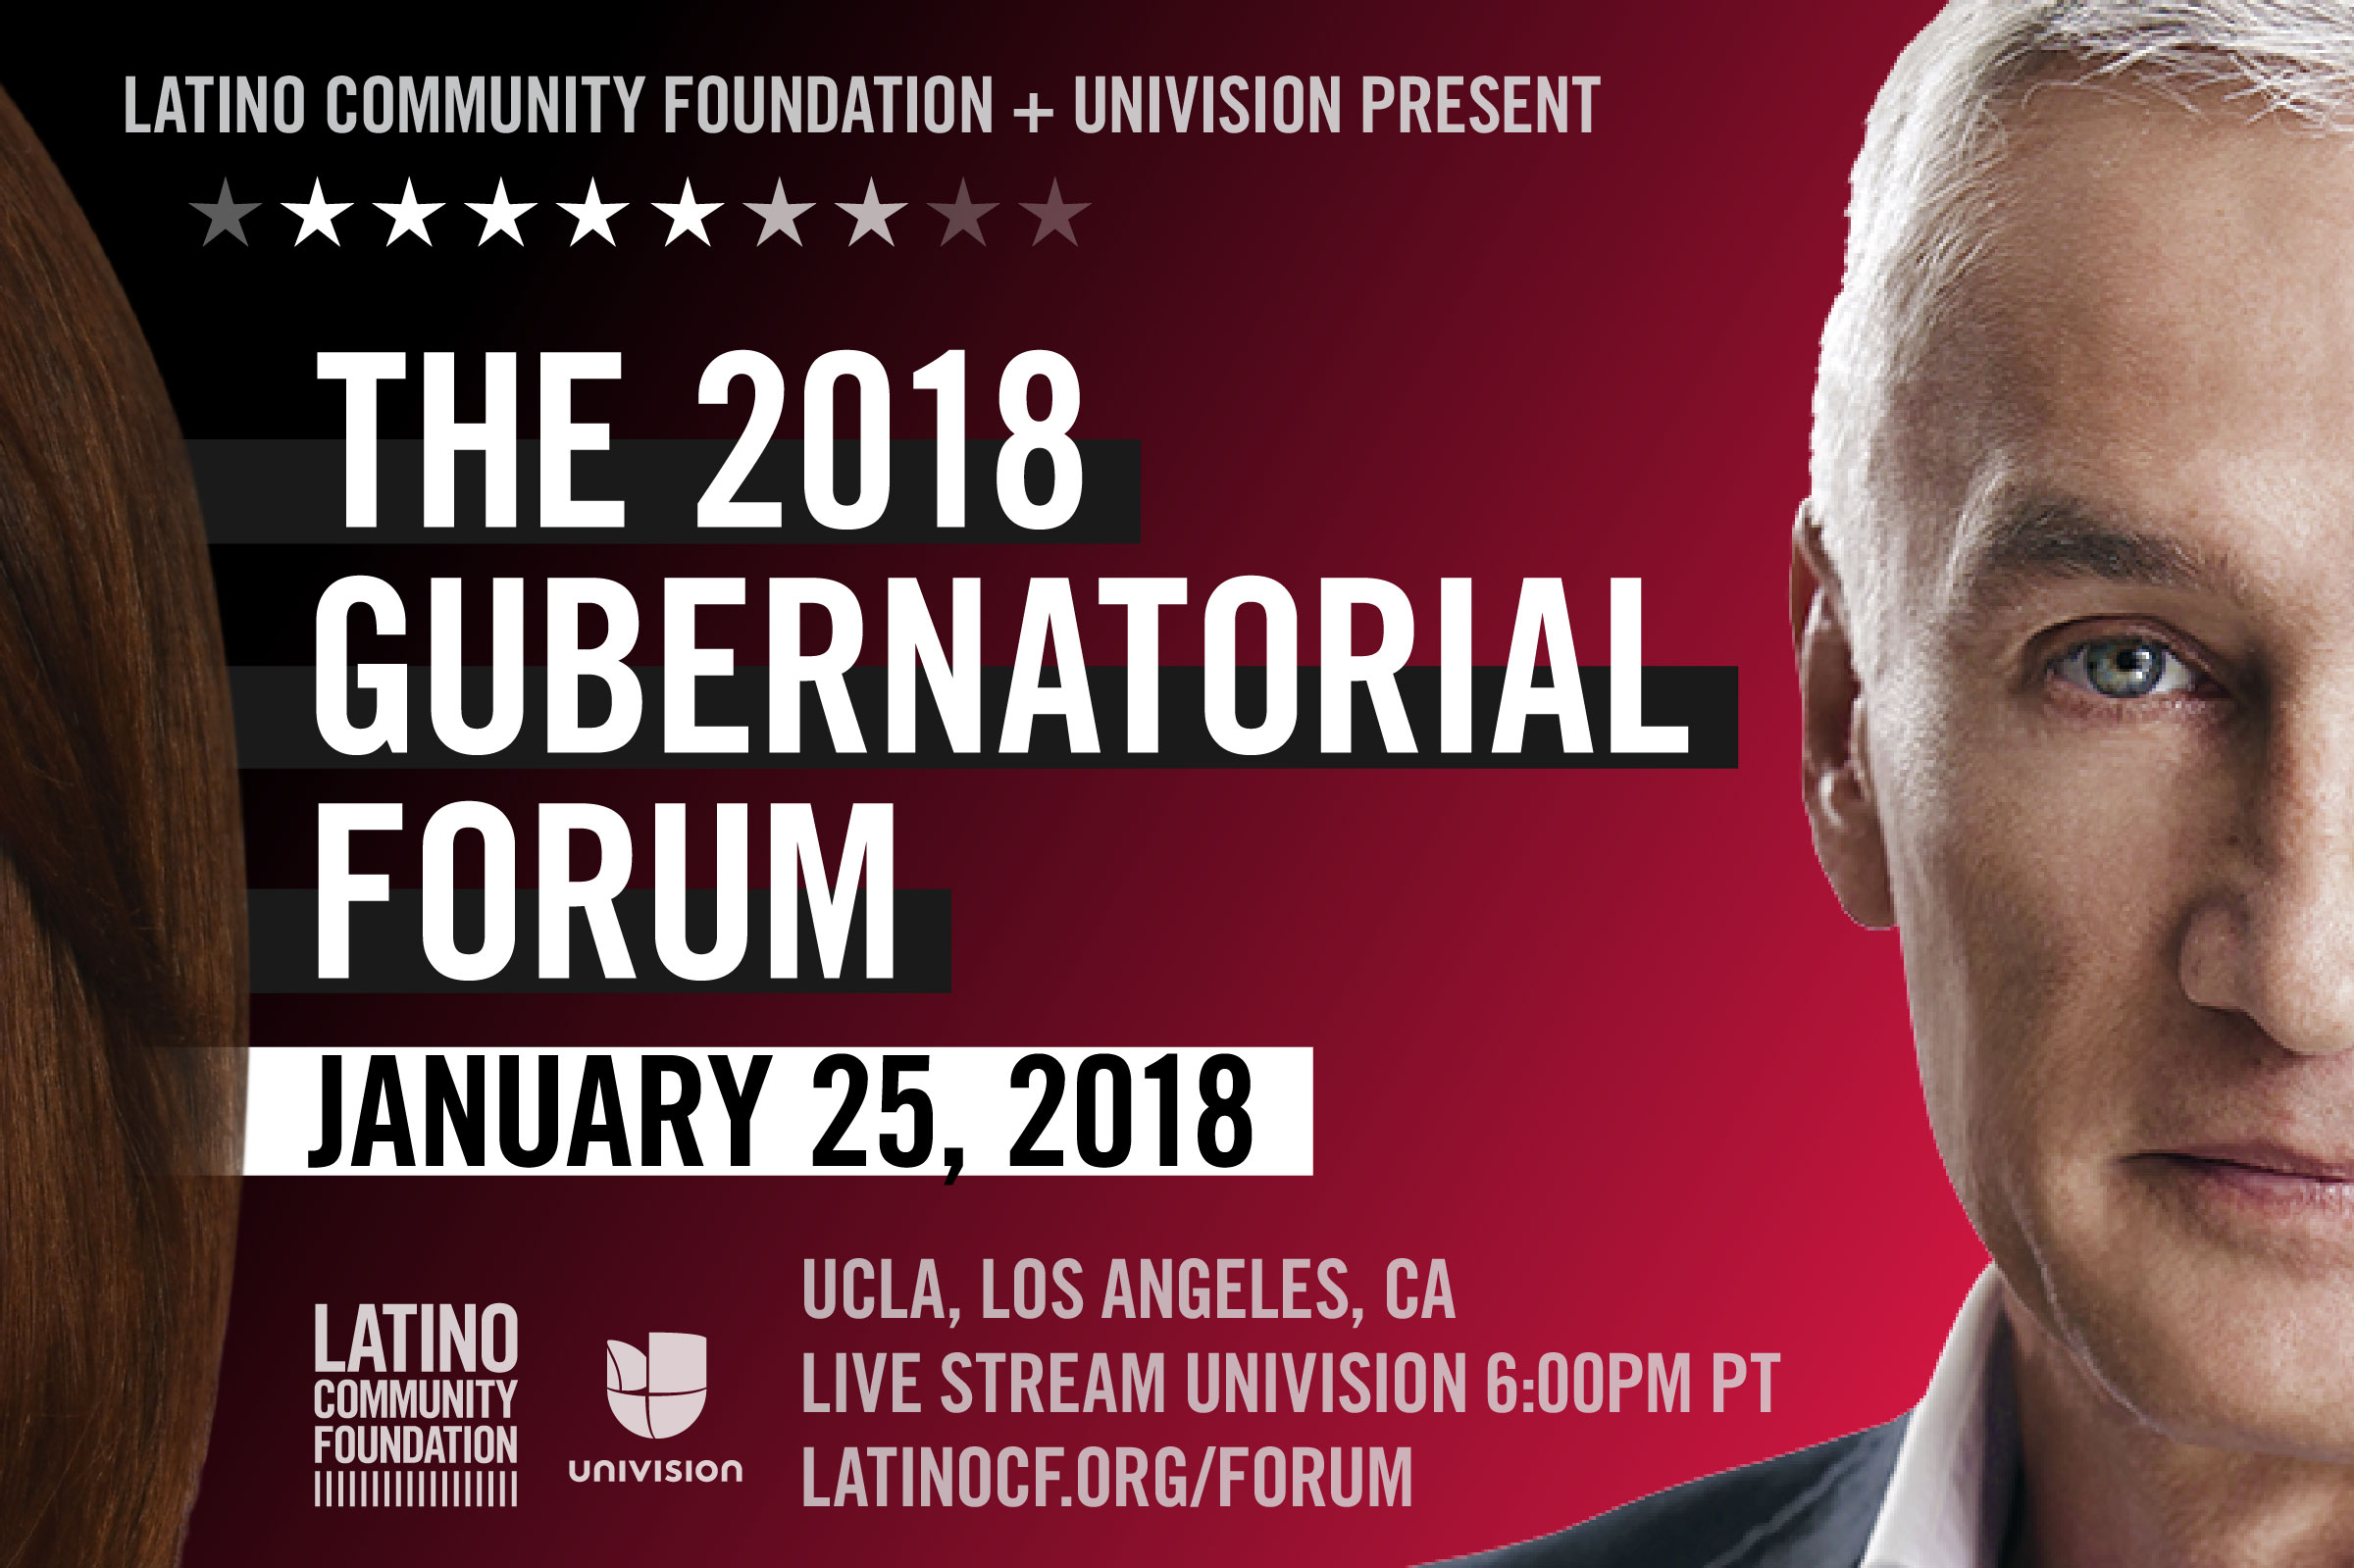 The Latino Community Foundation Is Partnering With Univision To Host The 2018 Gubernatorial Forum